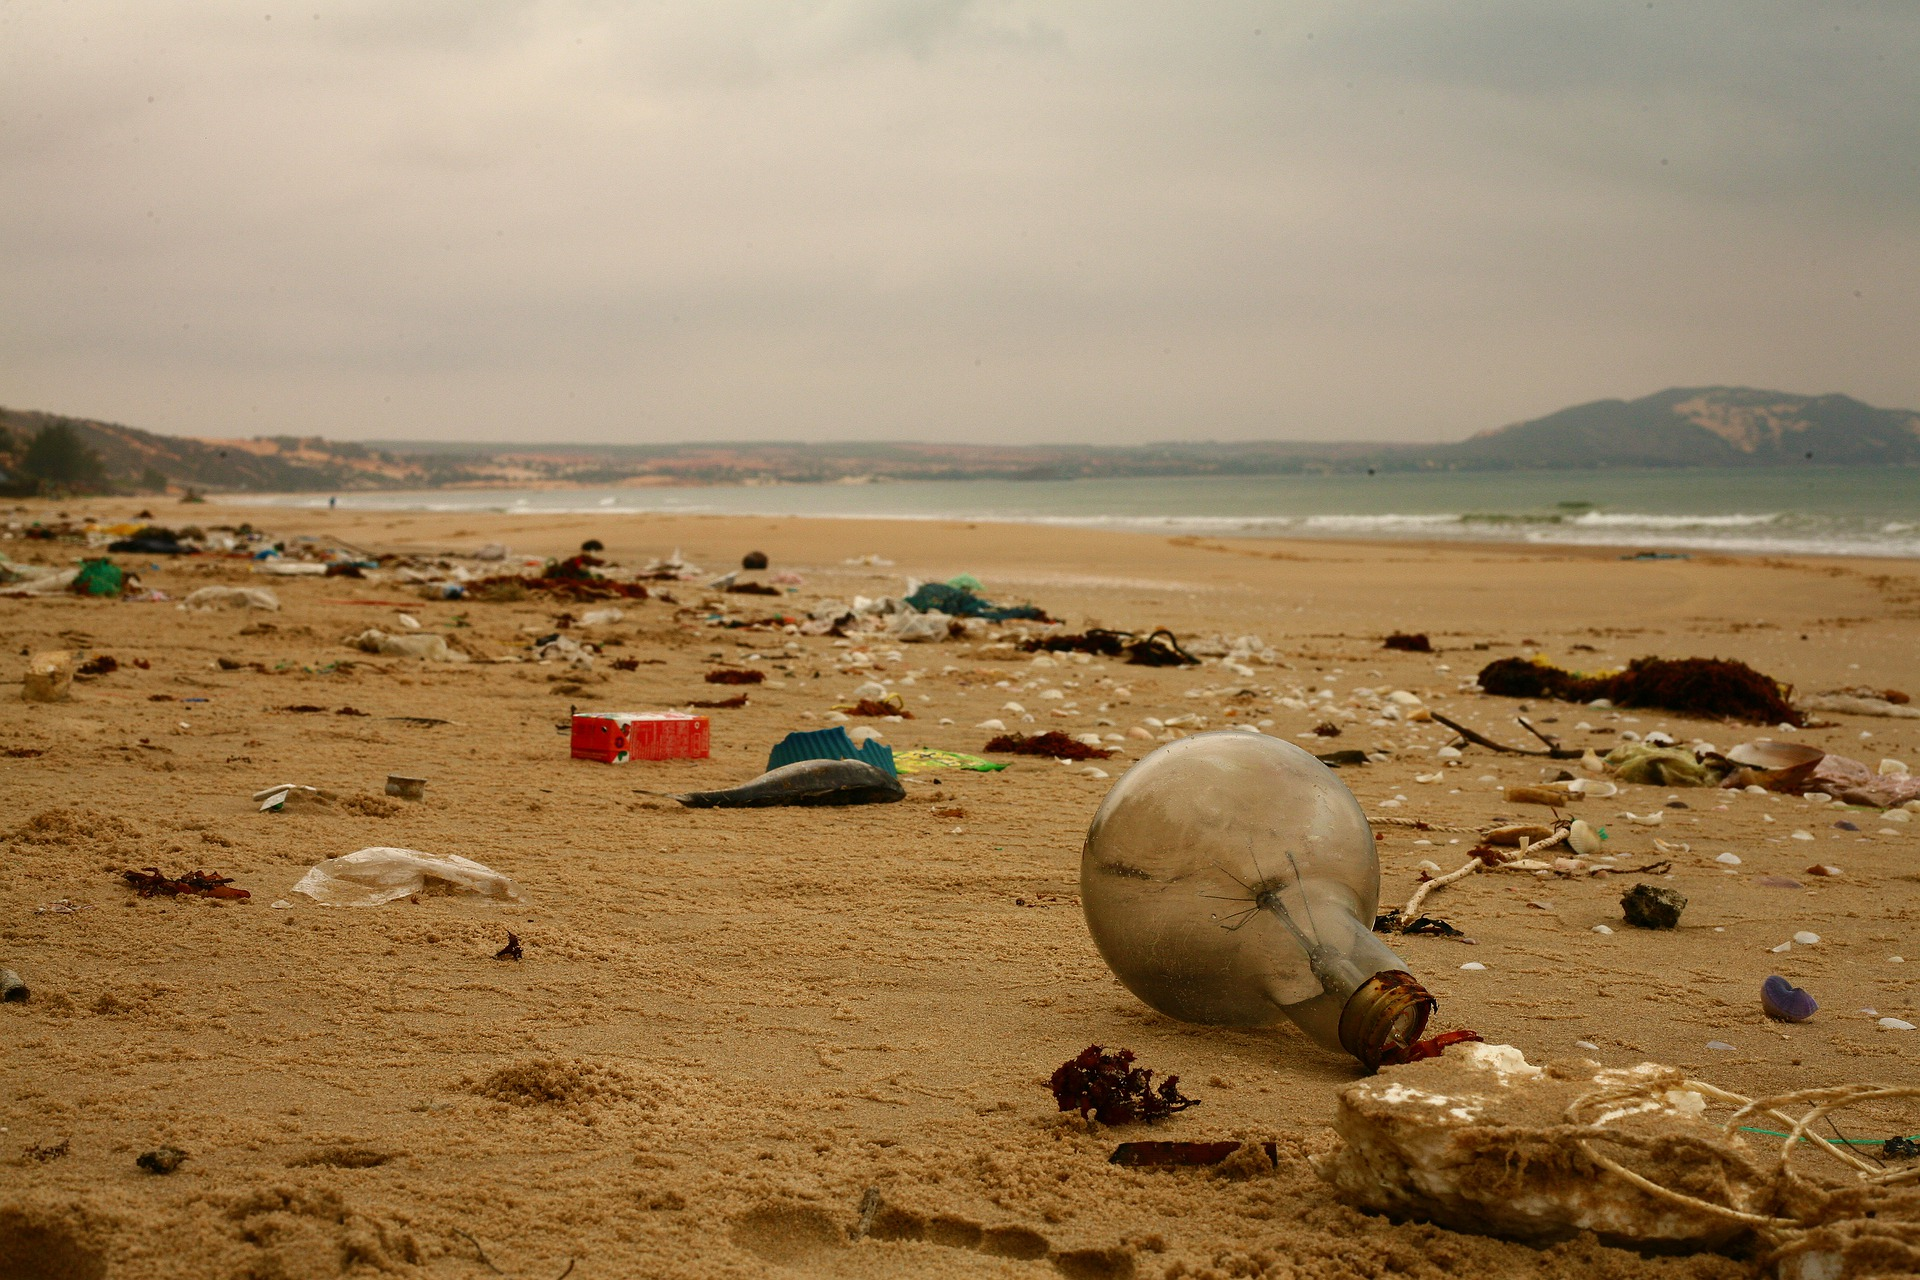 trash strewn across a beach